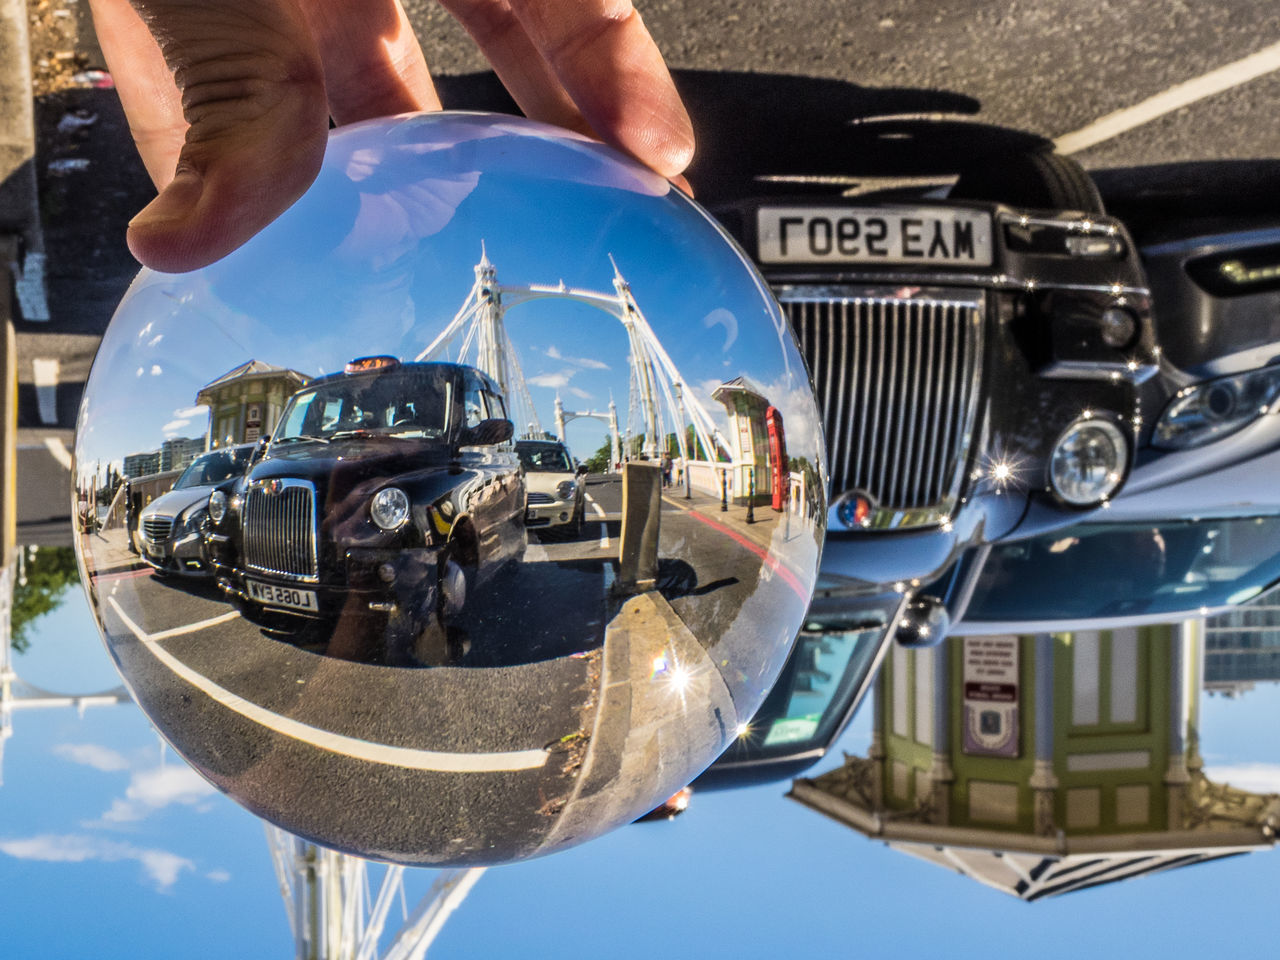 Albert Bridge Architecture Battersea Black Cab Bridge Britain Car Chelsea Close-up Crystal Ball Day England Human Hand Landscape London London Cab Mode Of Transport No People One Person Outdoors Real People Taxi Transportation United Kingdom The Street Photographer - 2017 EyeEm Awards